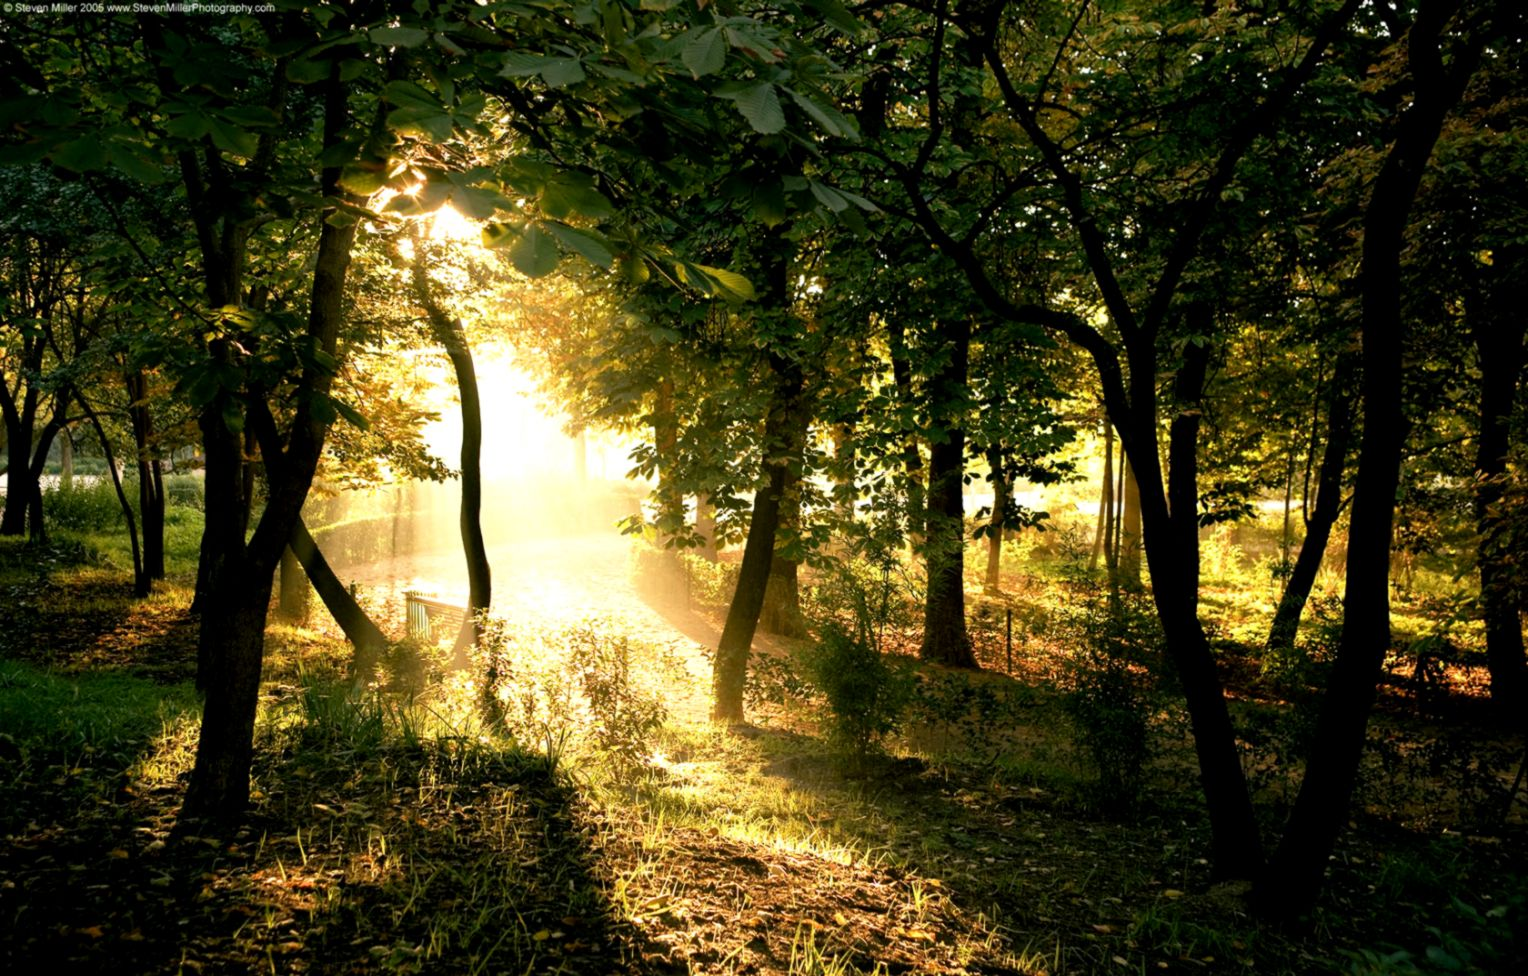 Mac Wallpapers Hd » Light In The Forest Nature Mac - Forest At Dawn Hd Phone - HD Wallpaper